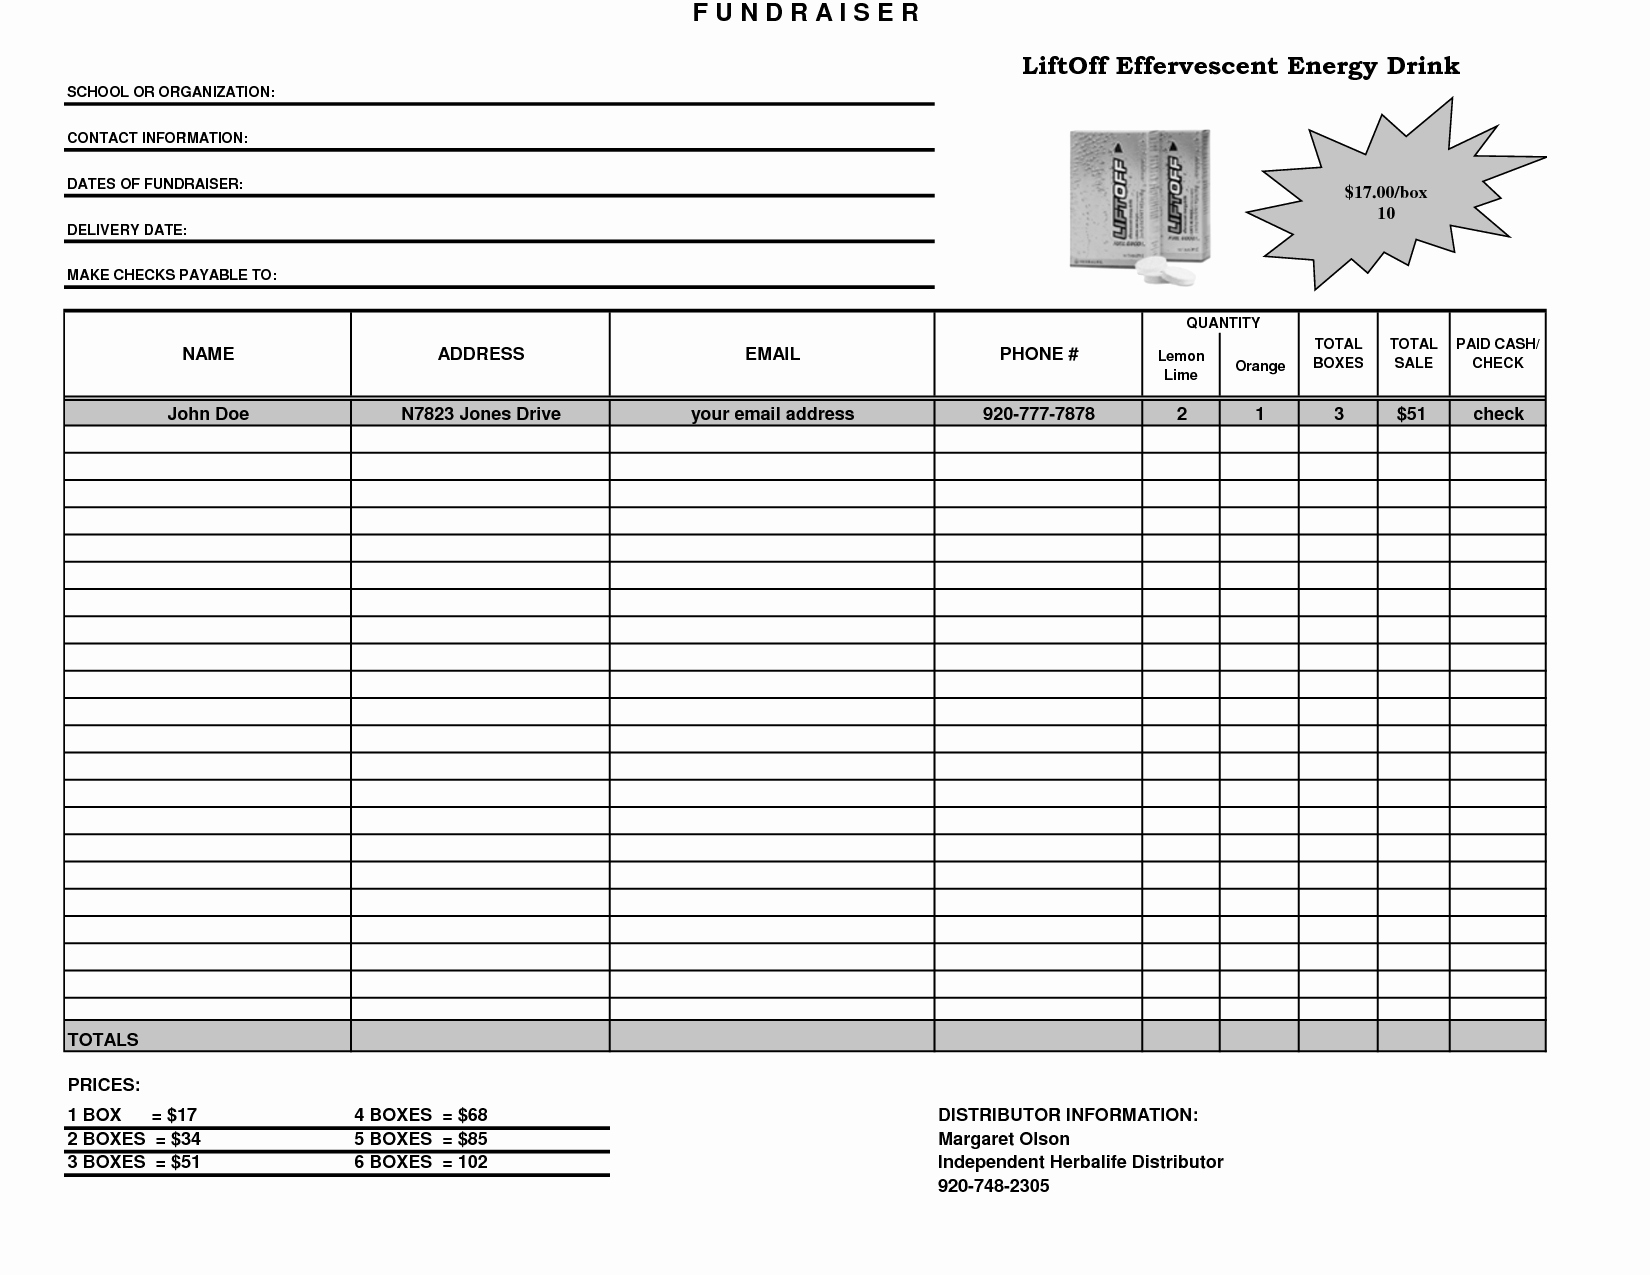 Free Fundraiser order form Template Unique Fundraiser Template Excel Fundraiser order form Template